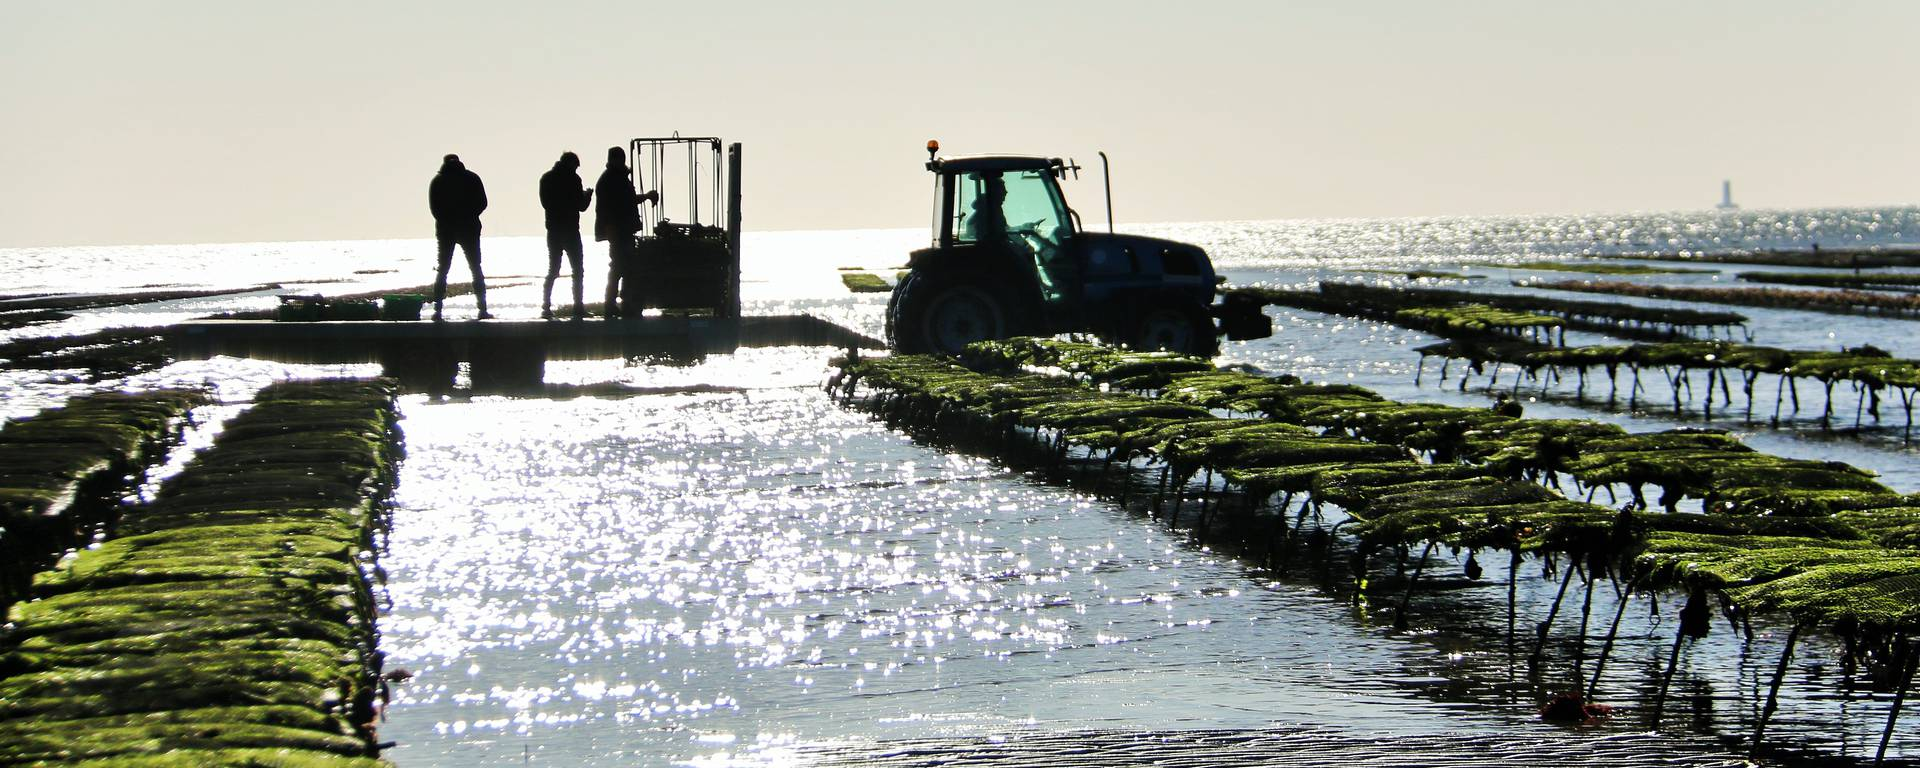 Oyster farmers on their farm